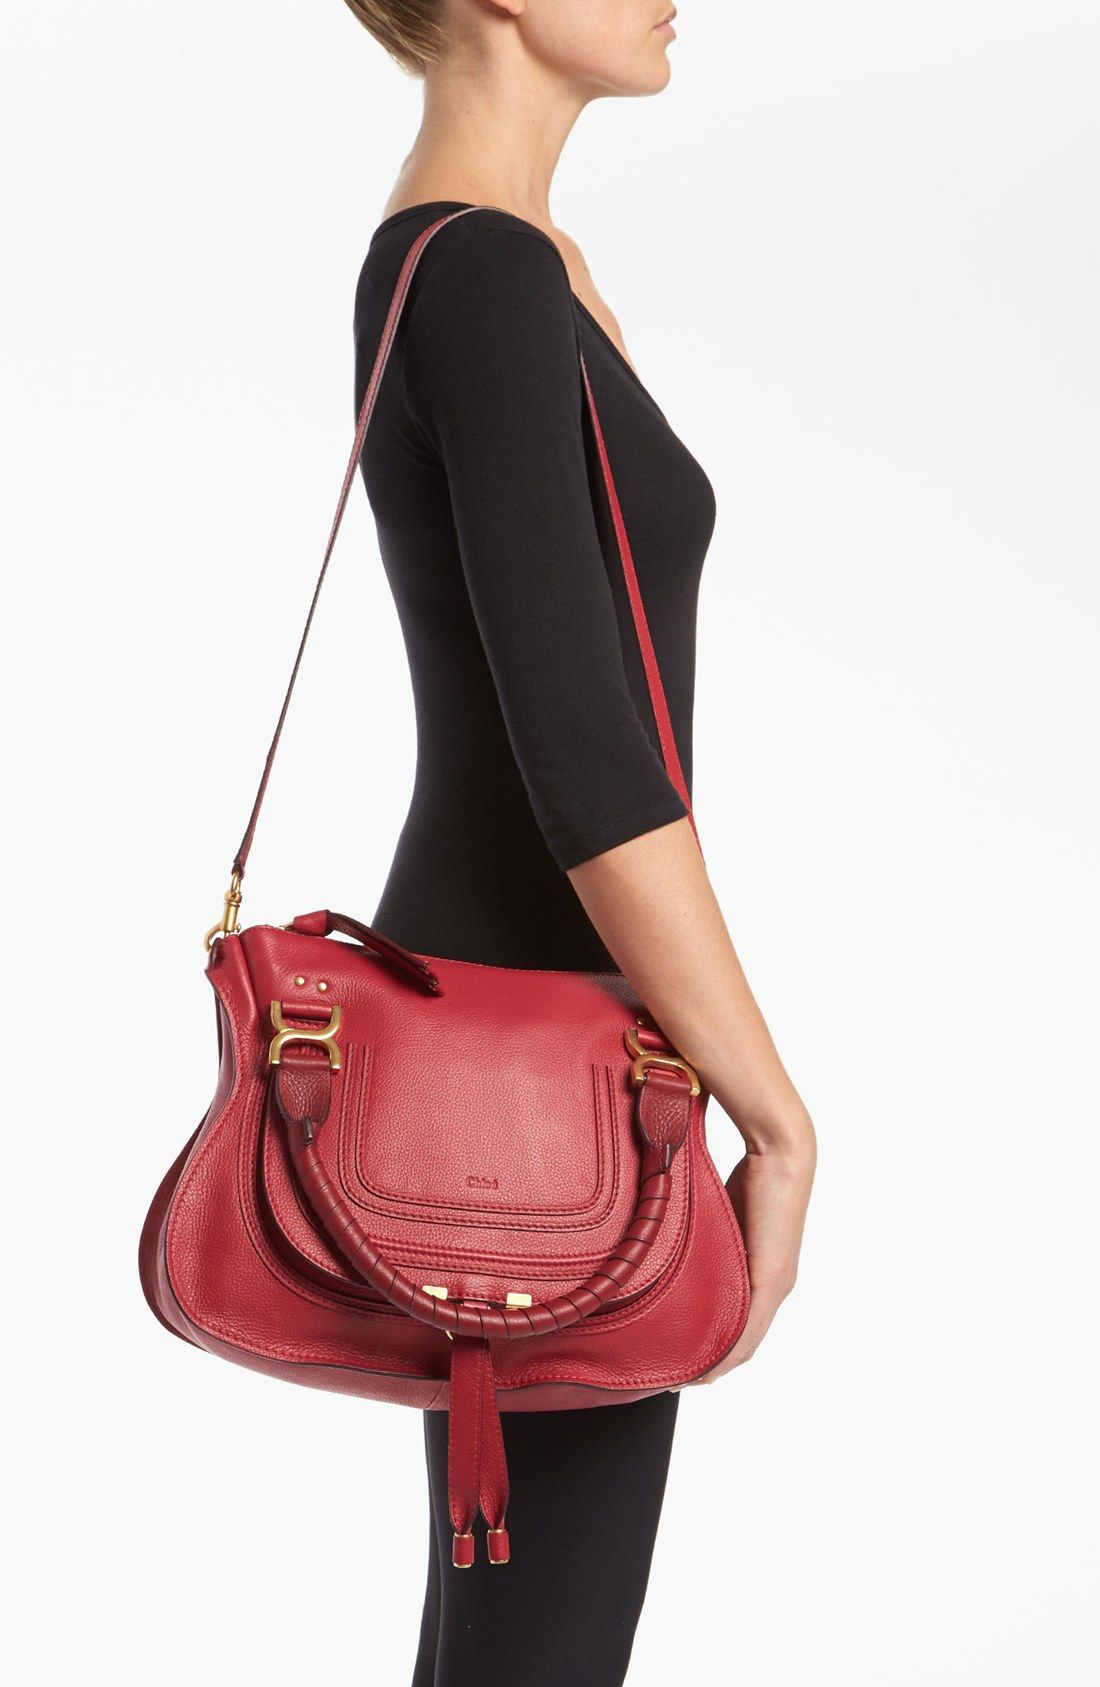 chloe imitation handbags - chloe women\u0026#39;s marcie medium satchel, chloe red bag